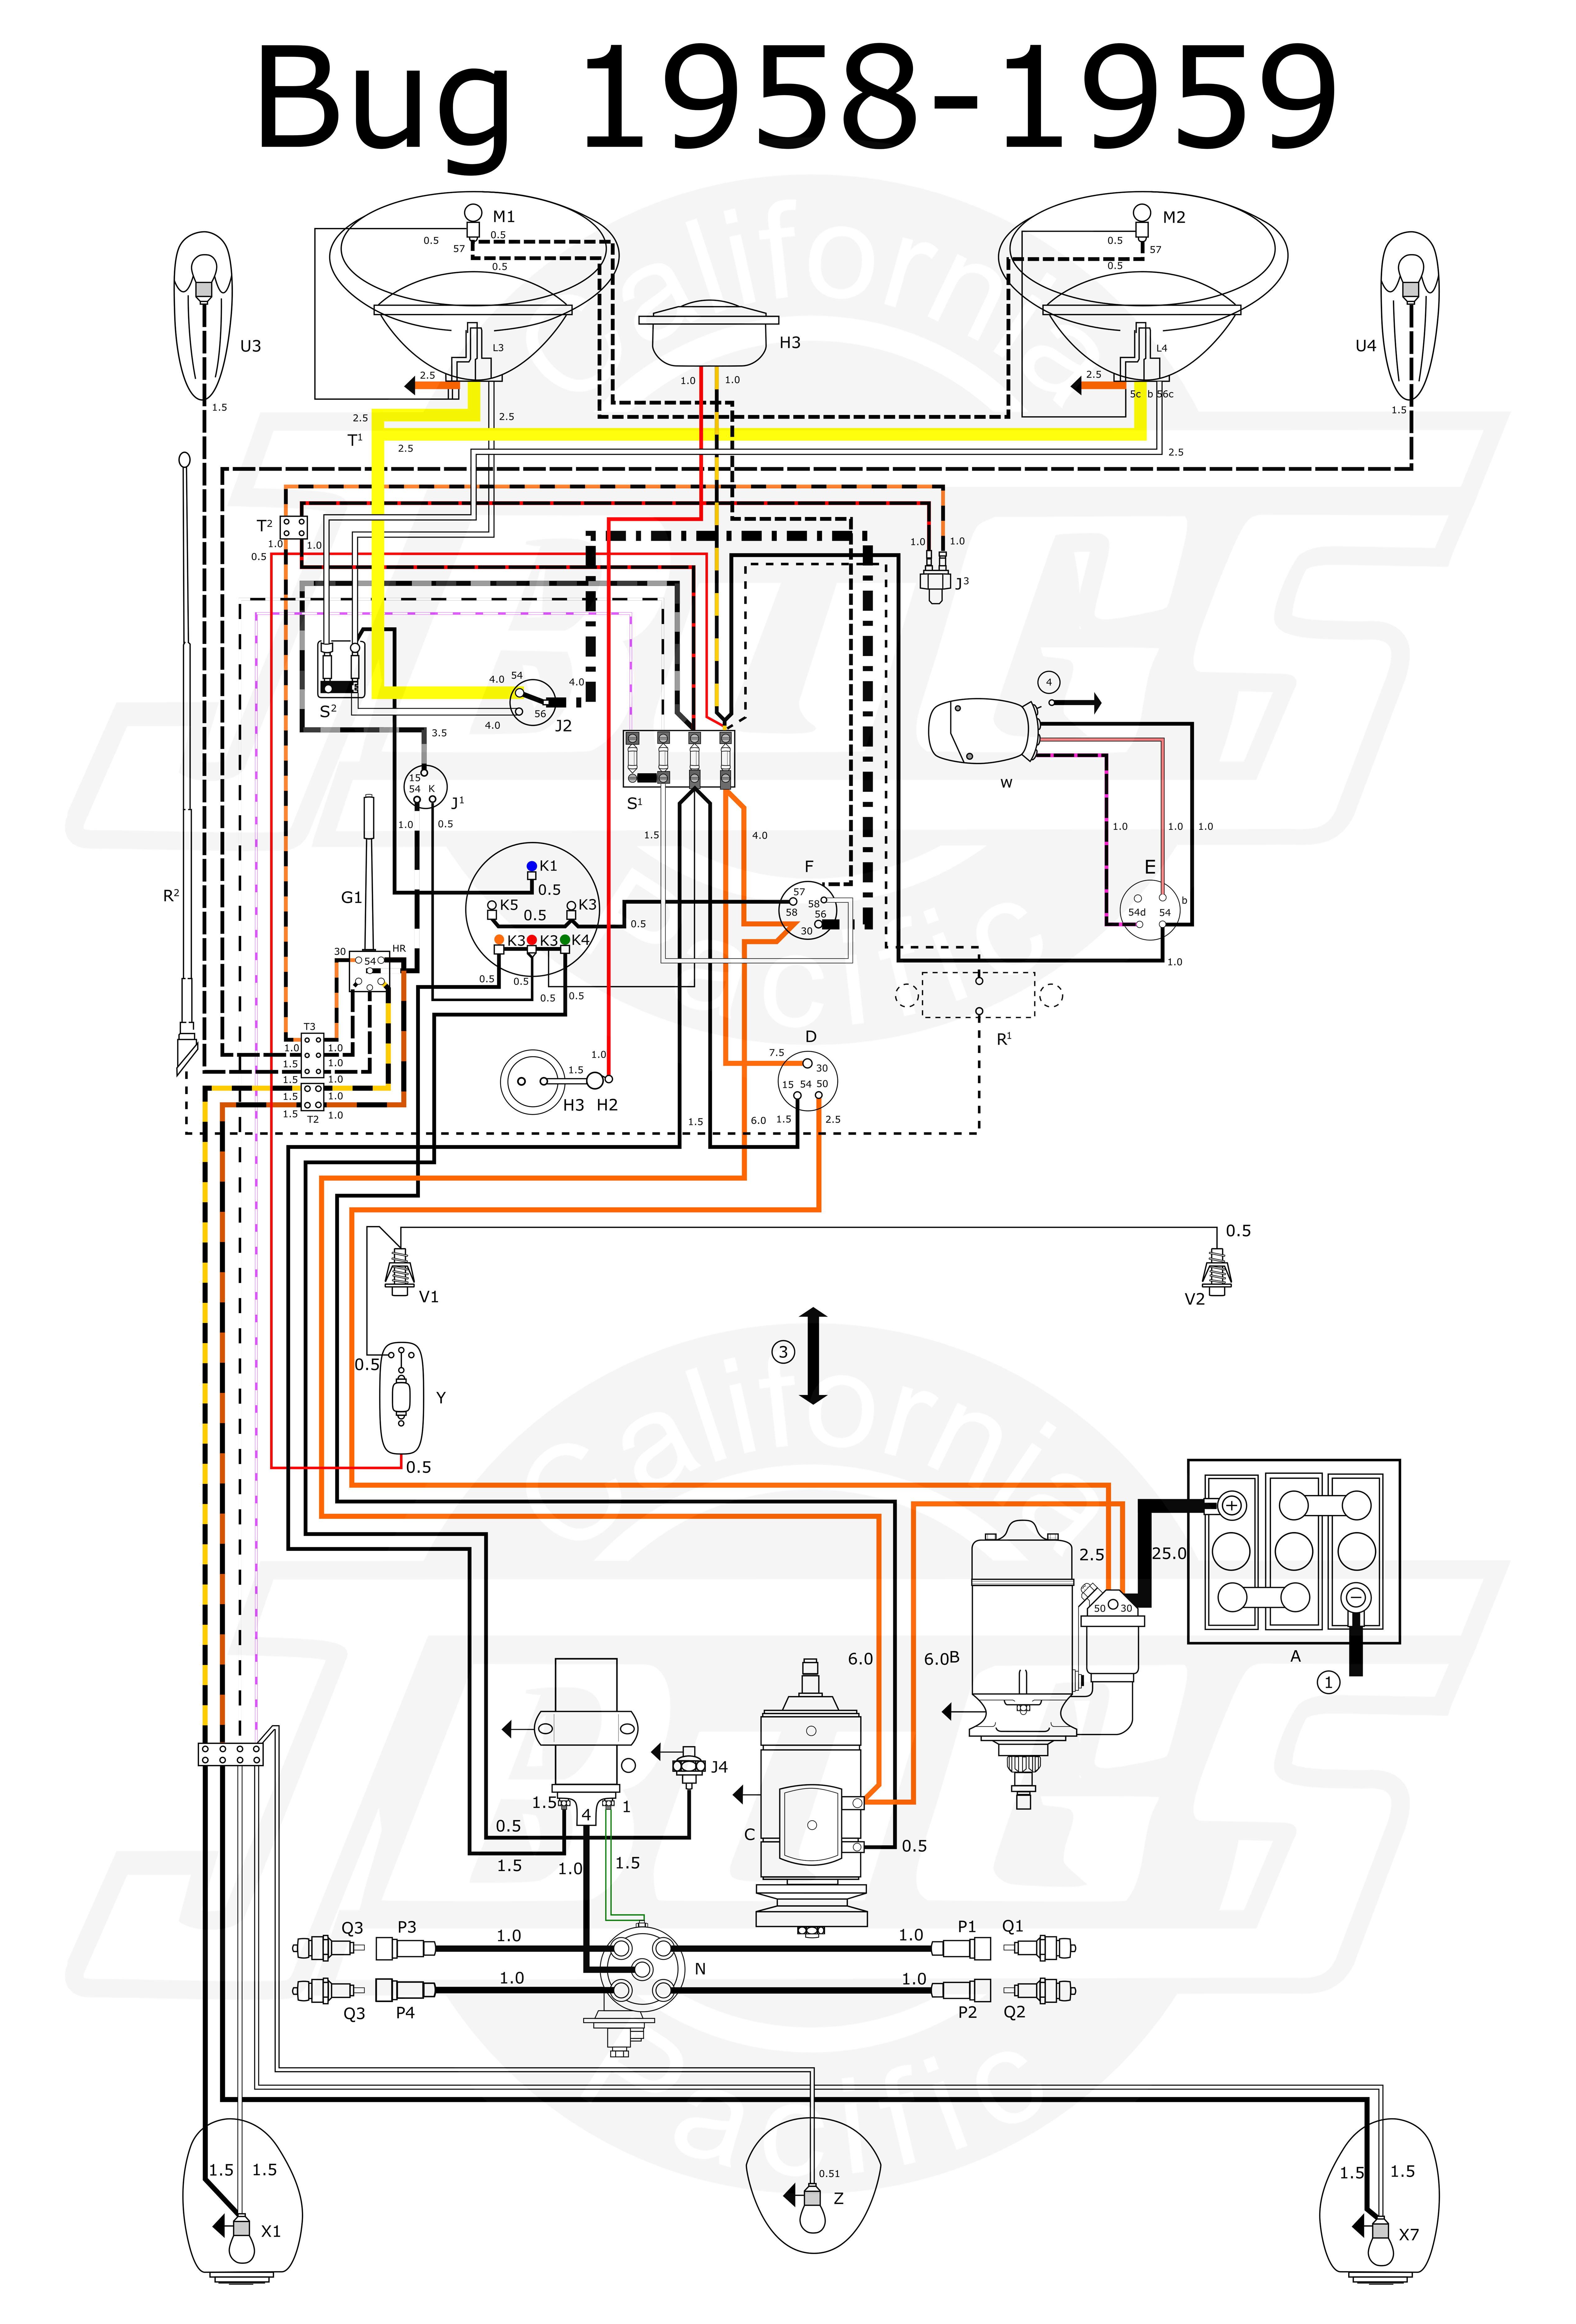 kubota sel engine parts diagram with Ford Sel Tractor Ignition Switch Wiring Diagram on Ford Mustang Shelby Gt Eleanor Engine Bay Youtube also Kubota Sel Engine Manual also Ransomes Bobcat Mower Wiring Diagram also New Holland Mz19h Parts additionally Kubota Wiring Diagram Pdf.